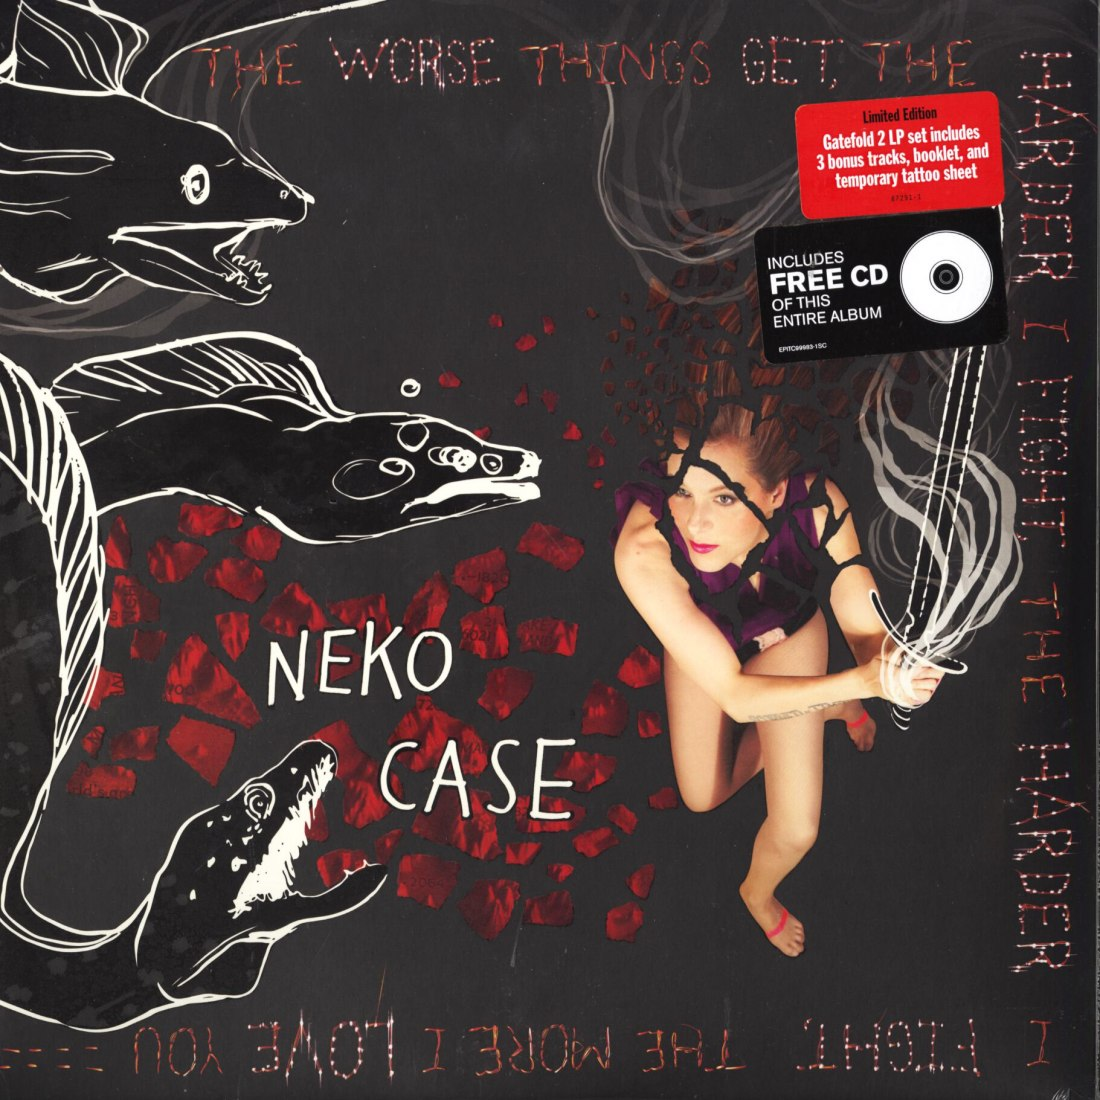 Neko Case - The Worse Things Get... - Deluxe, 2XLP, Vinyl, CD w bonus tracks, Anti, 2013